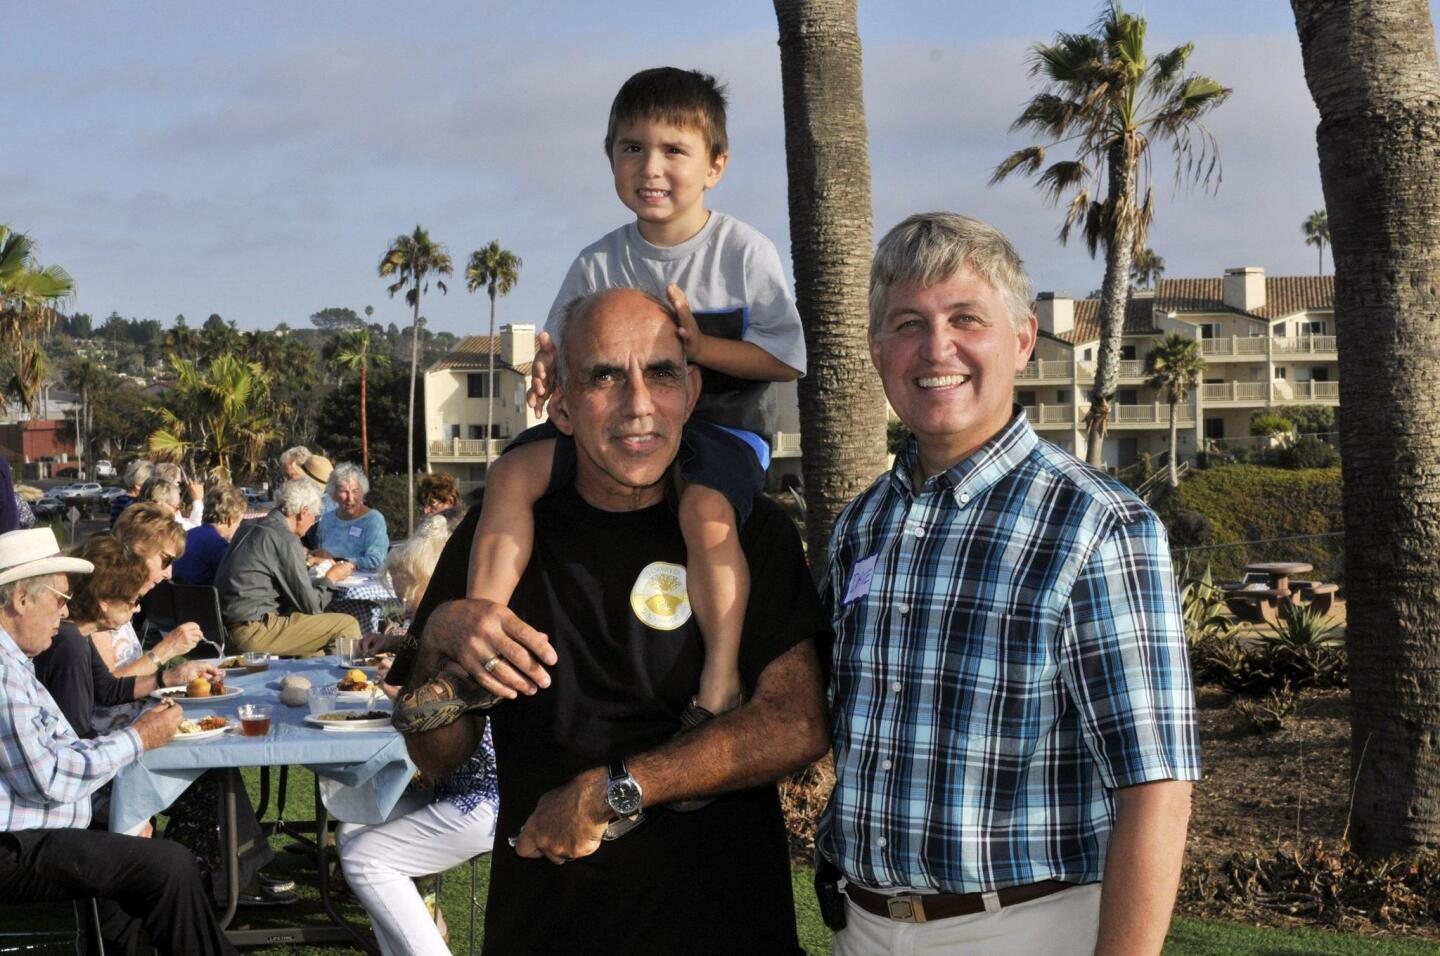 Solana Beach Civic and Historical Society Treasurer Wally Oliver with Manny, San Diego County Supervisor Dave Roberts